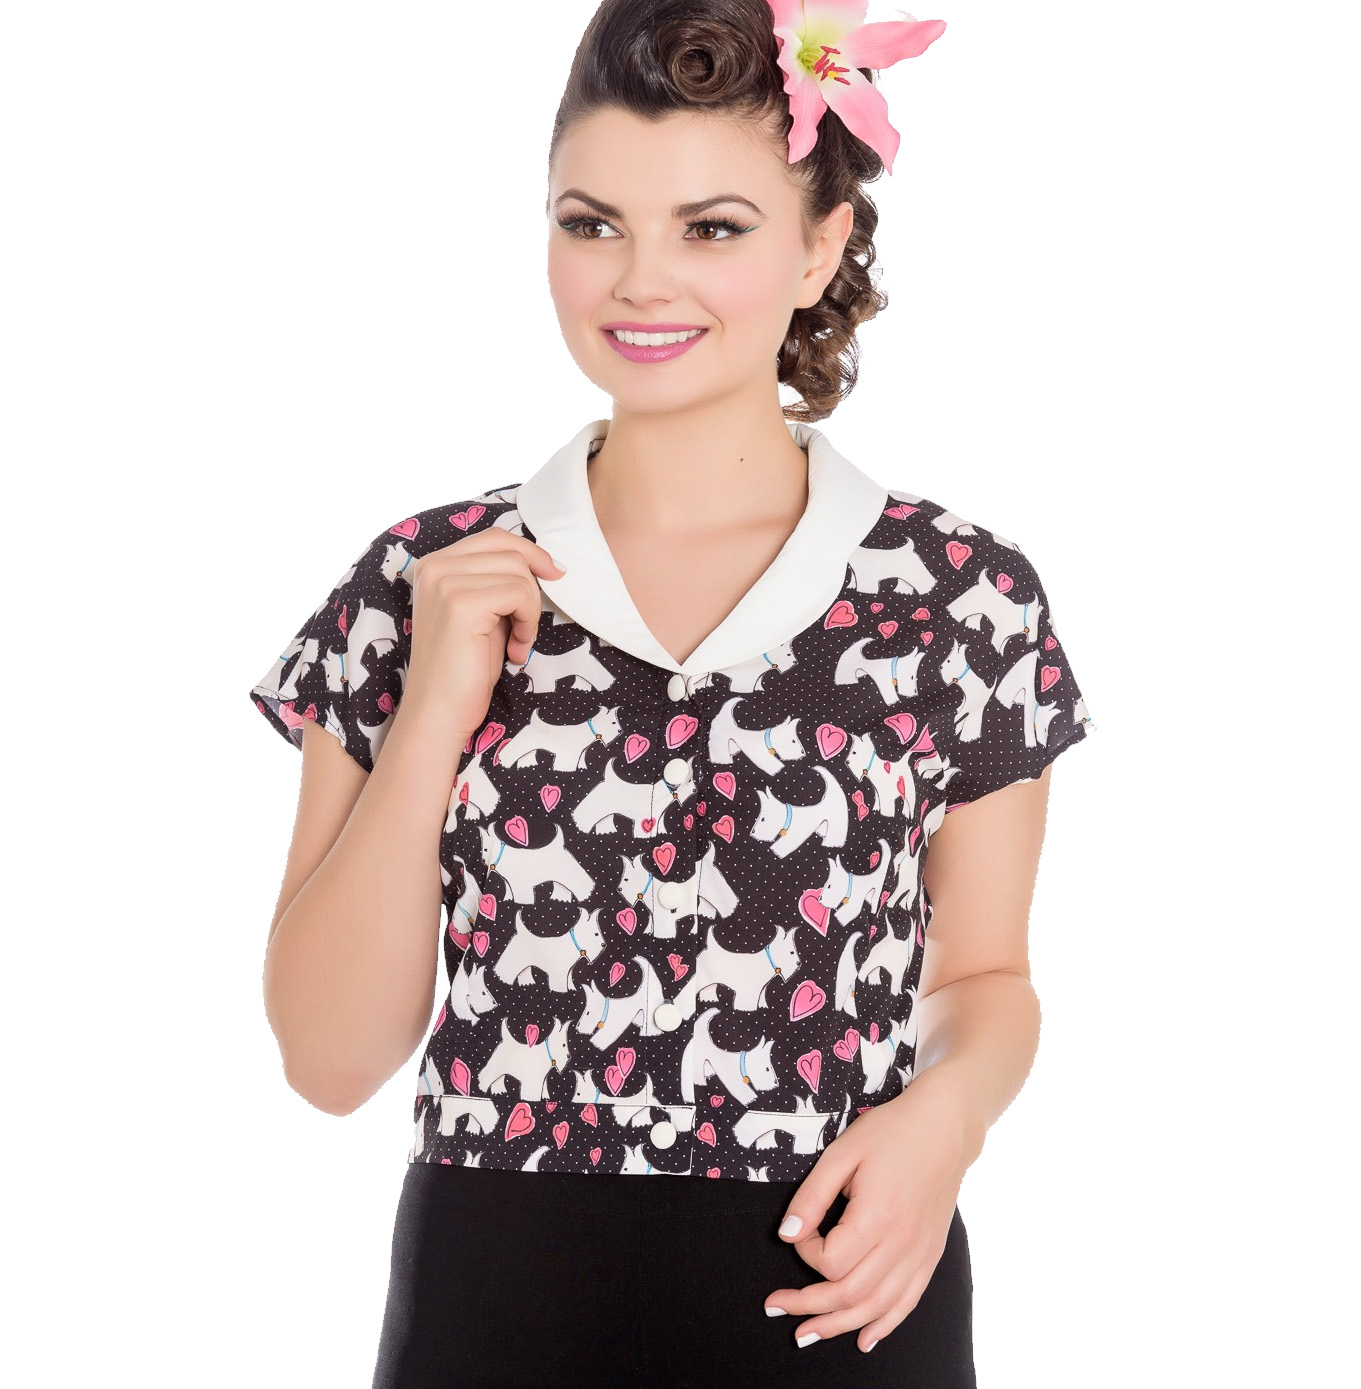 Hell Bunny 50s Retro Top Scottie Dog Heart AGGY Cropped Blouse Shirt All Sizes